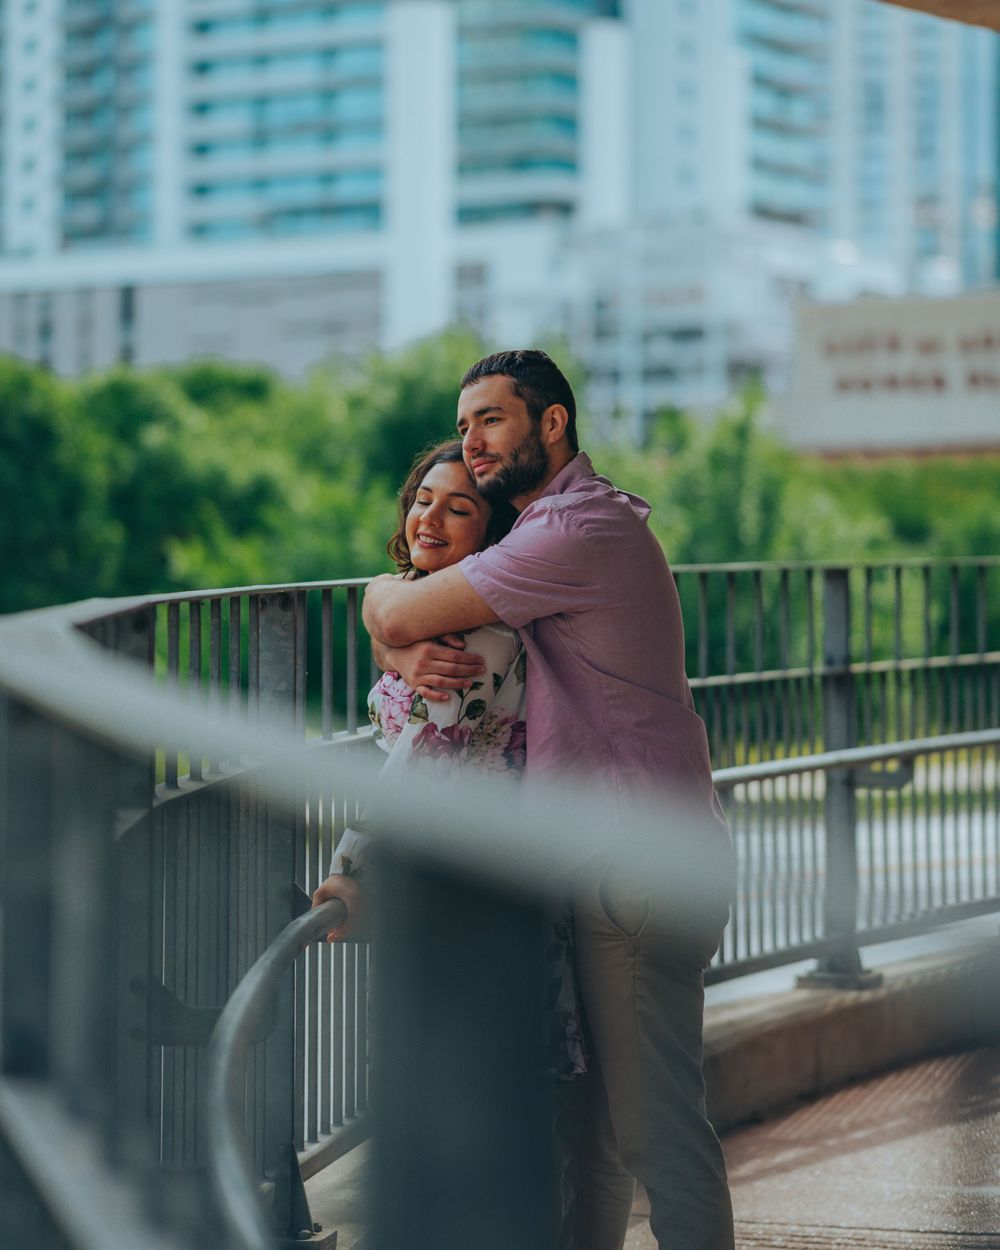 Jessica & Aldo Austin Engagement at Pfluger Pedestrian Bridge watching traffic off Cesar Chavez